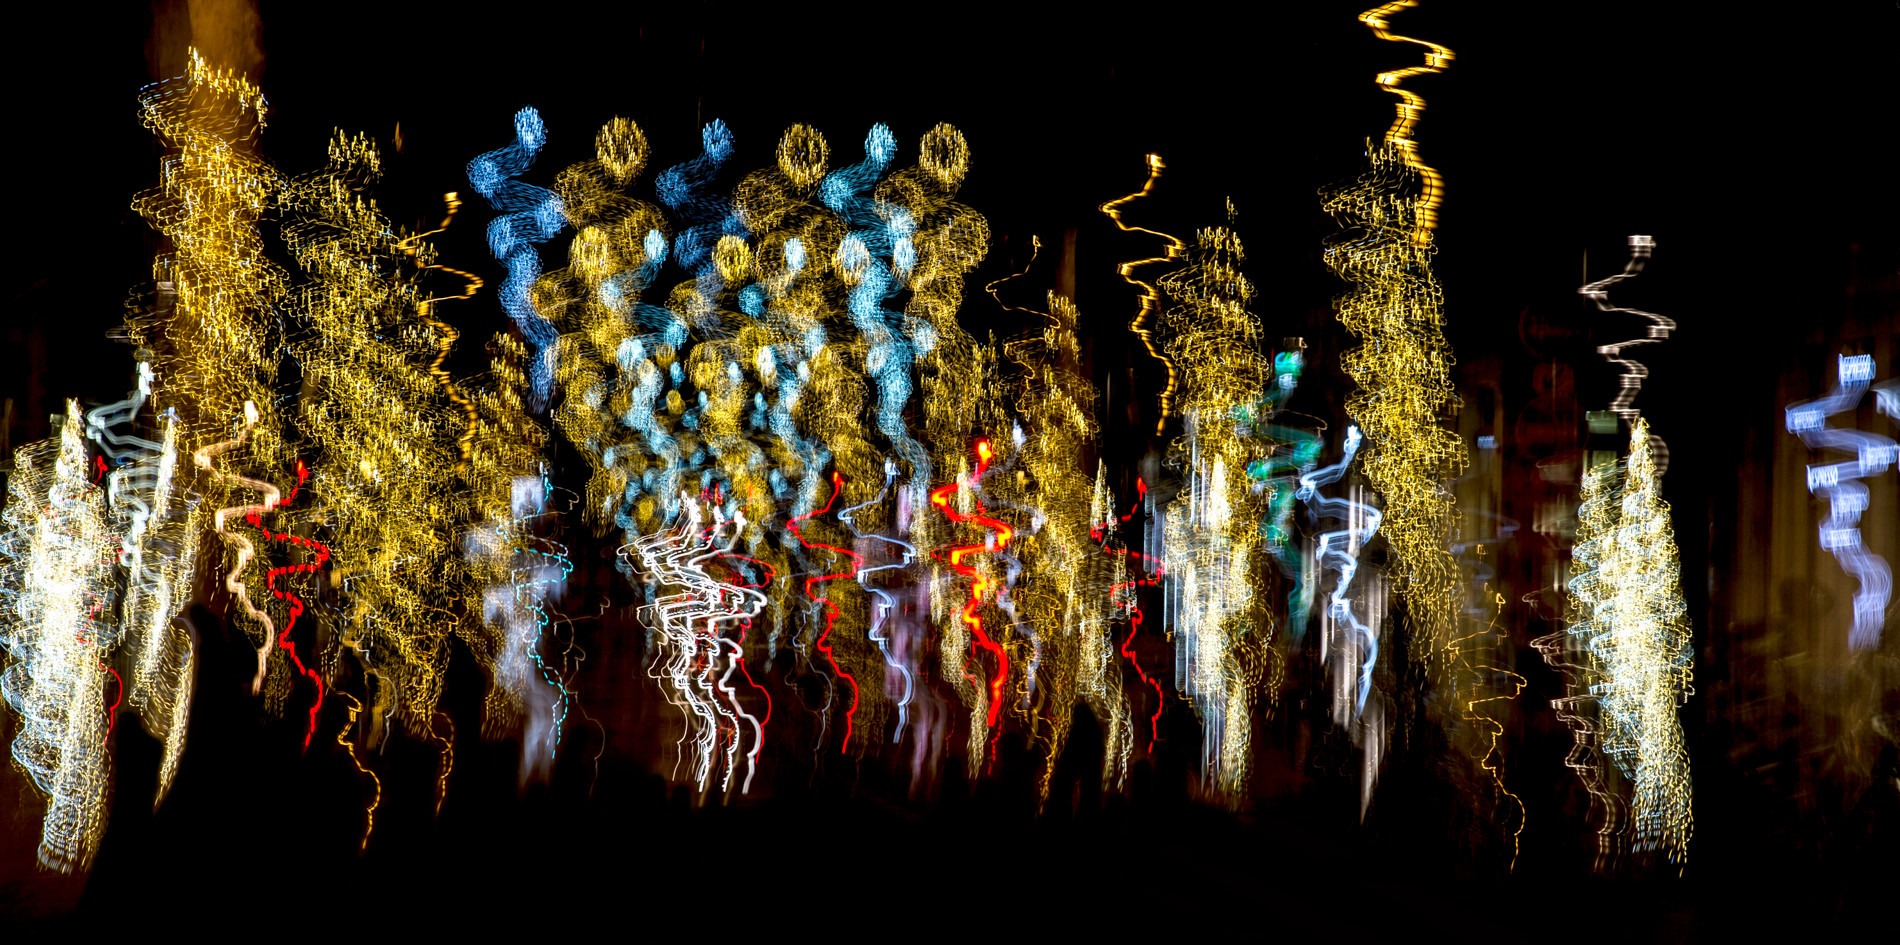 c_Abstraction_52558-Modifier.jpg